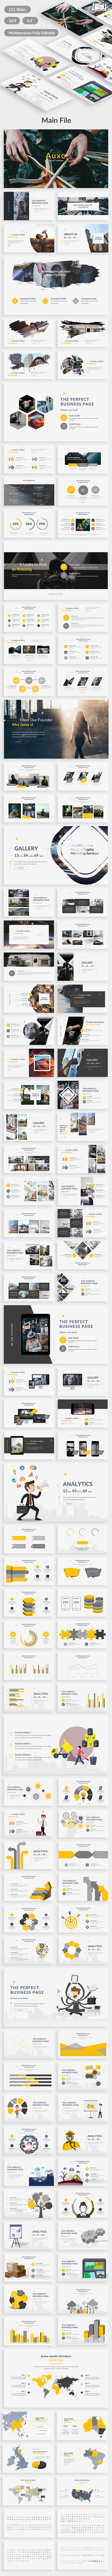 Auxo Premium Multipurpose Powerpoint Template - Creative PowerPoint Templates